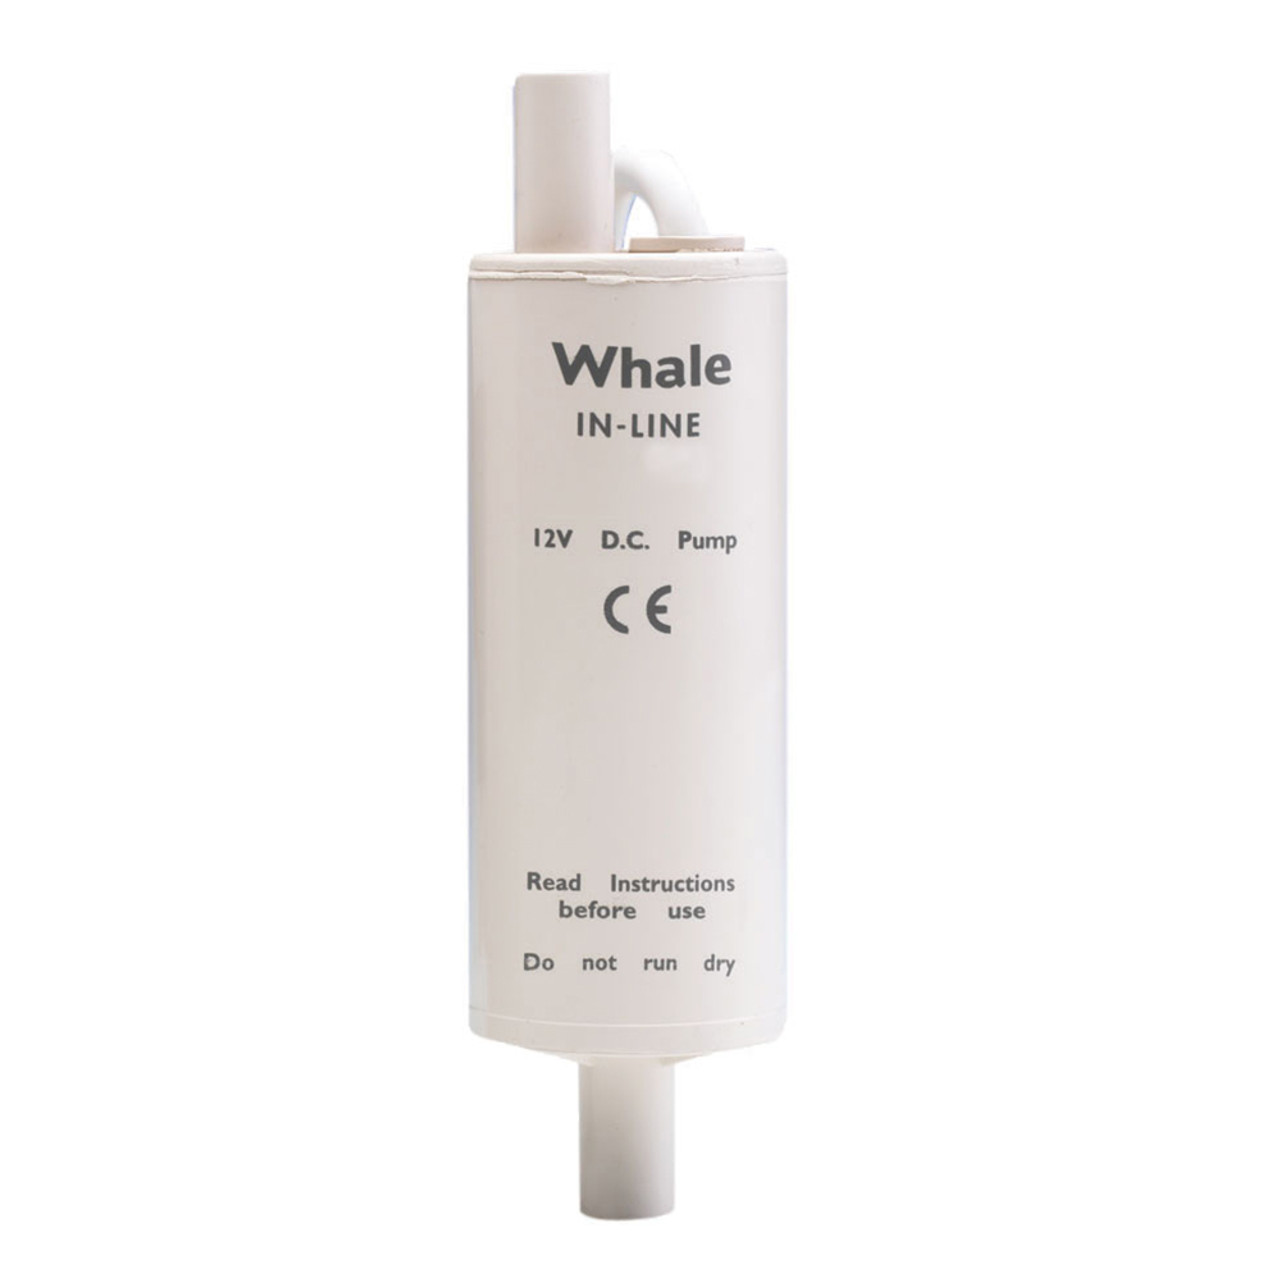 Whale Inline Electric Galley Pump - 13LPM - 12V